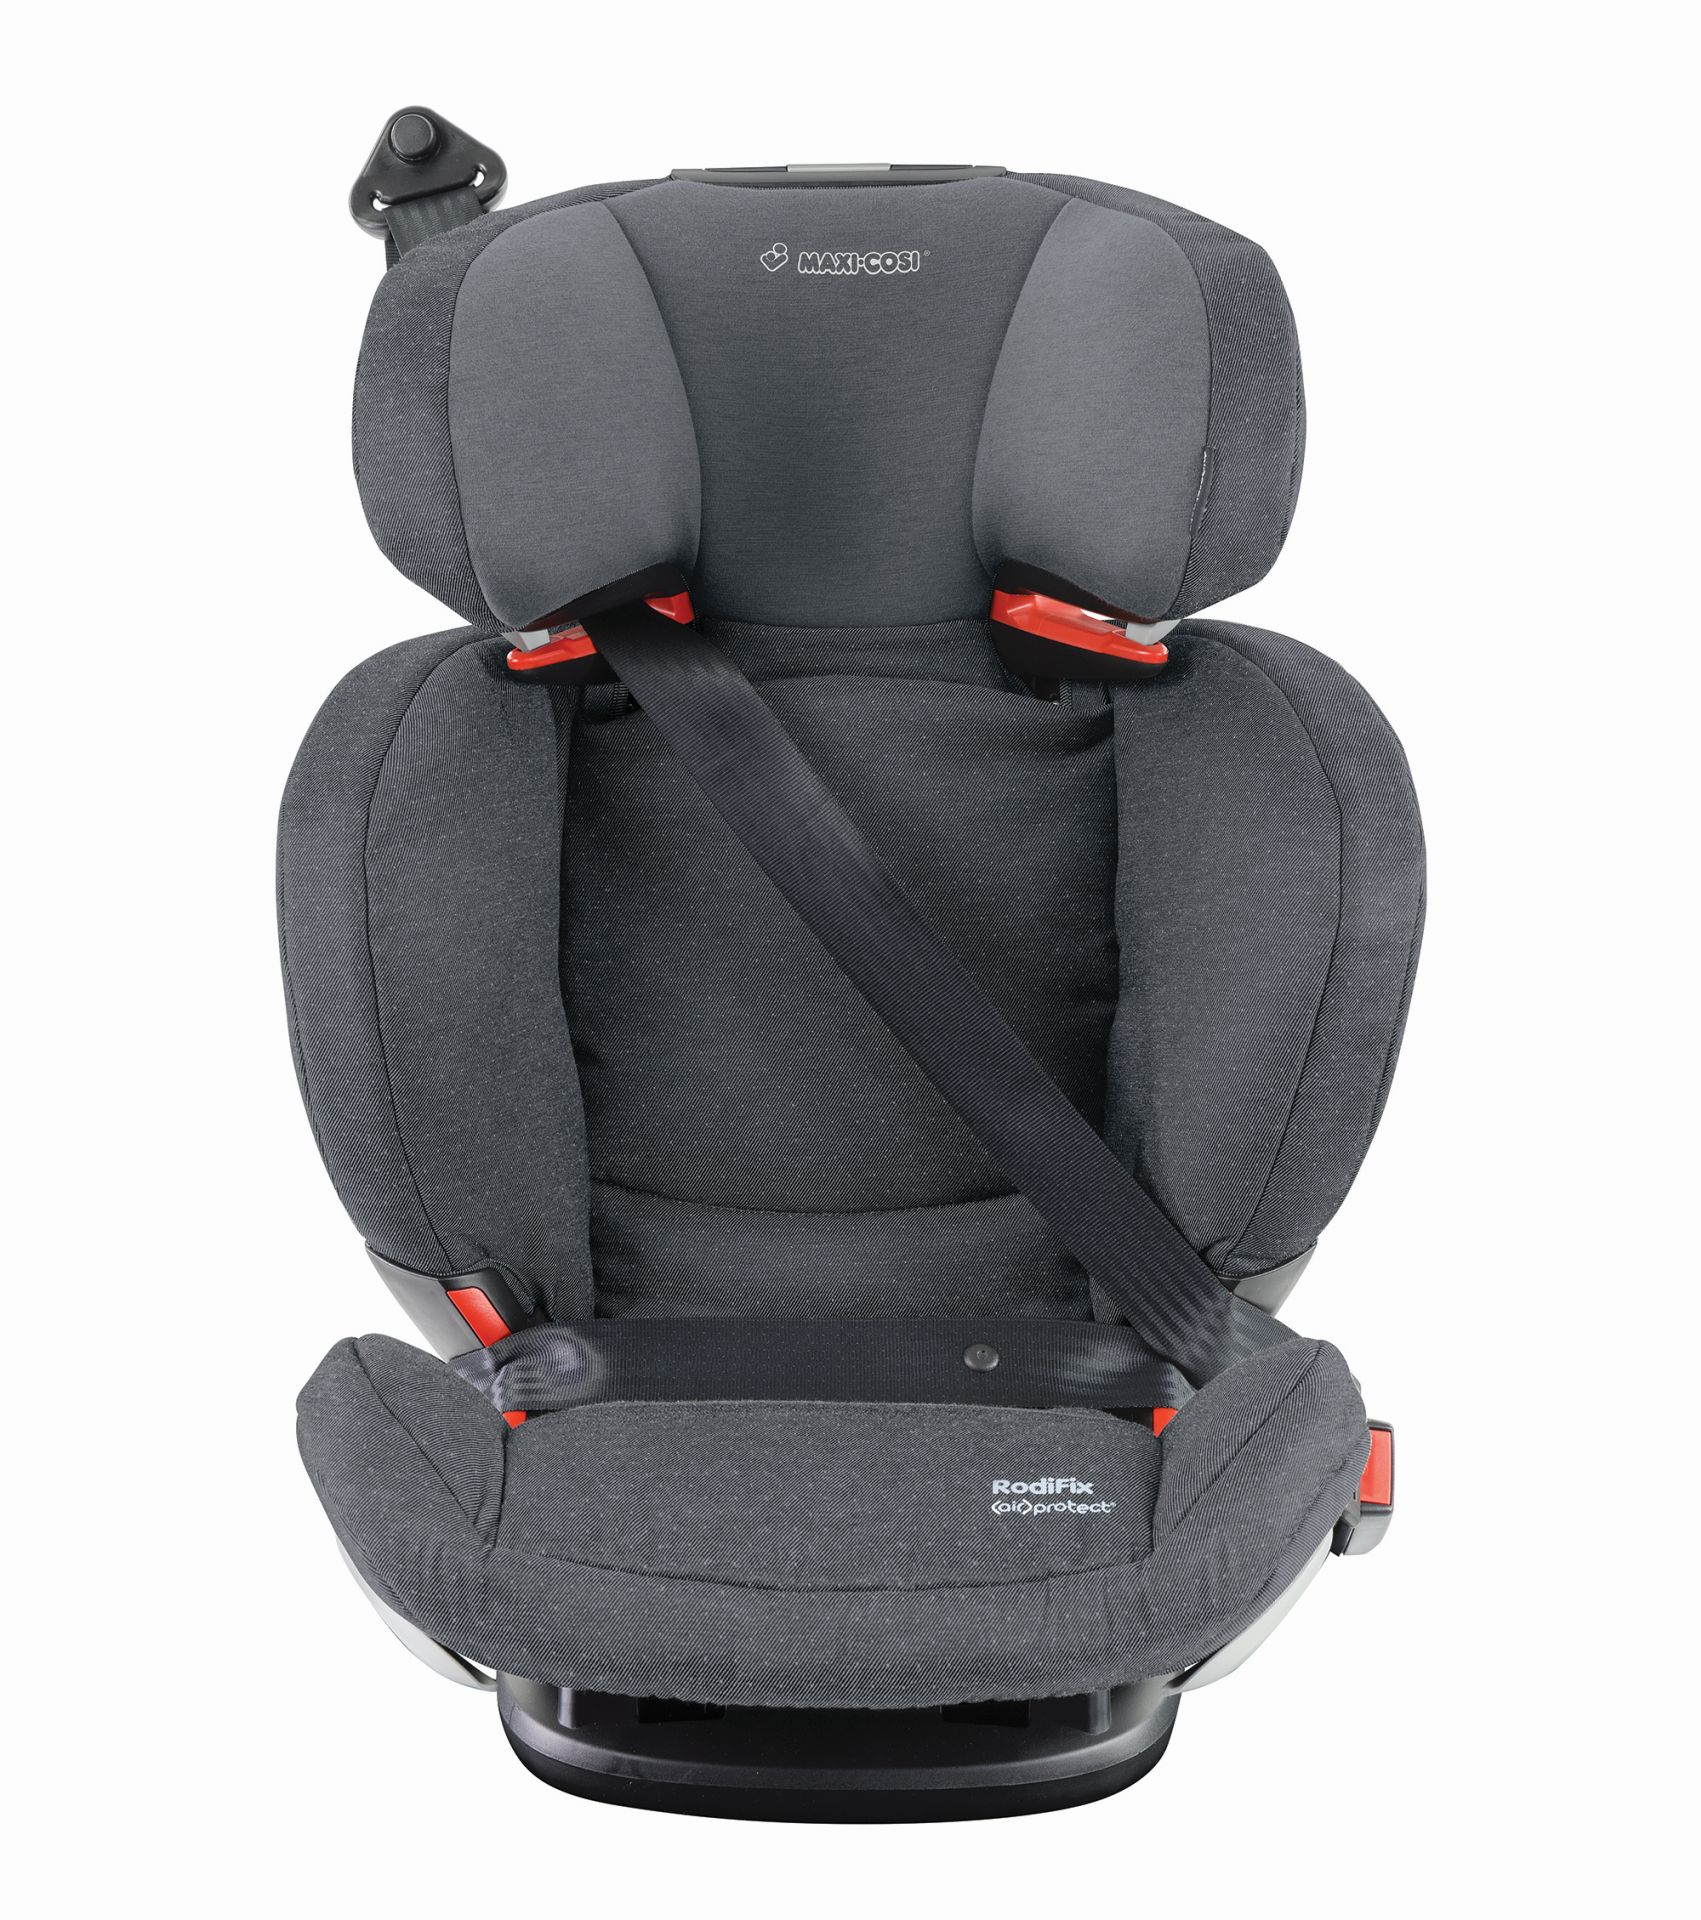 maxi cosi safety seat rodifix airprotect 2018 sparkling. Black Bedroom Furniture Sets. Home Design Ideas